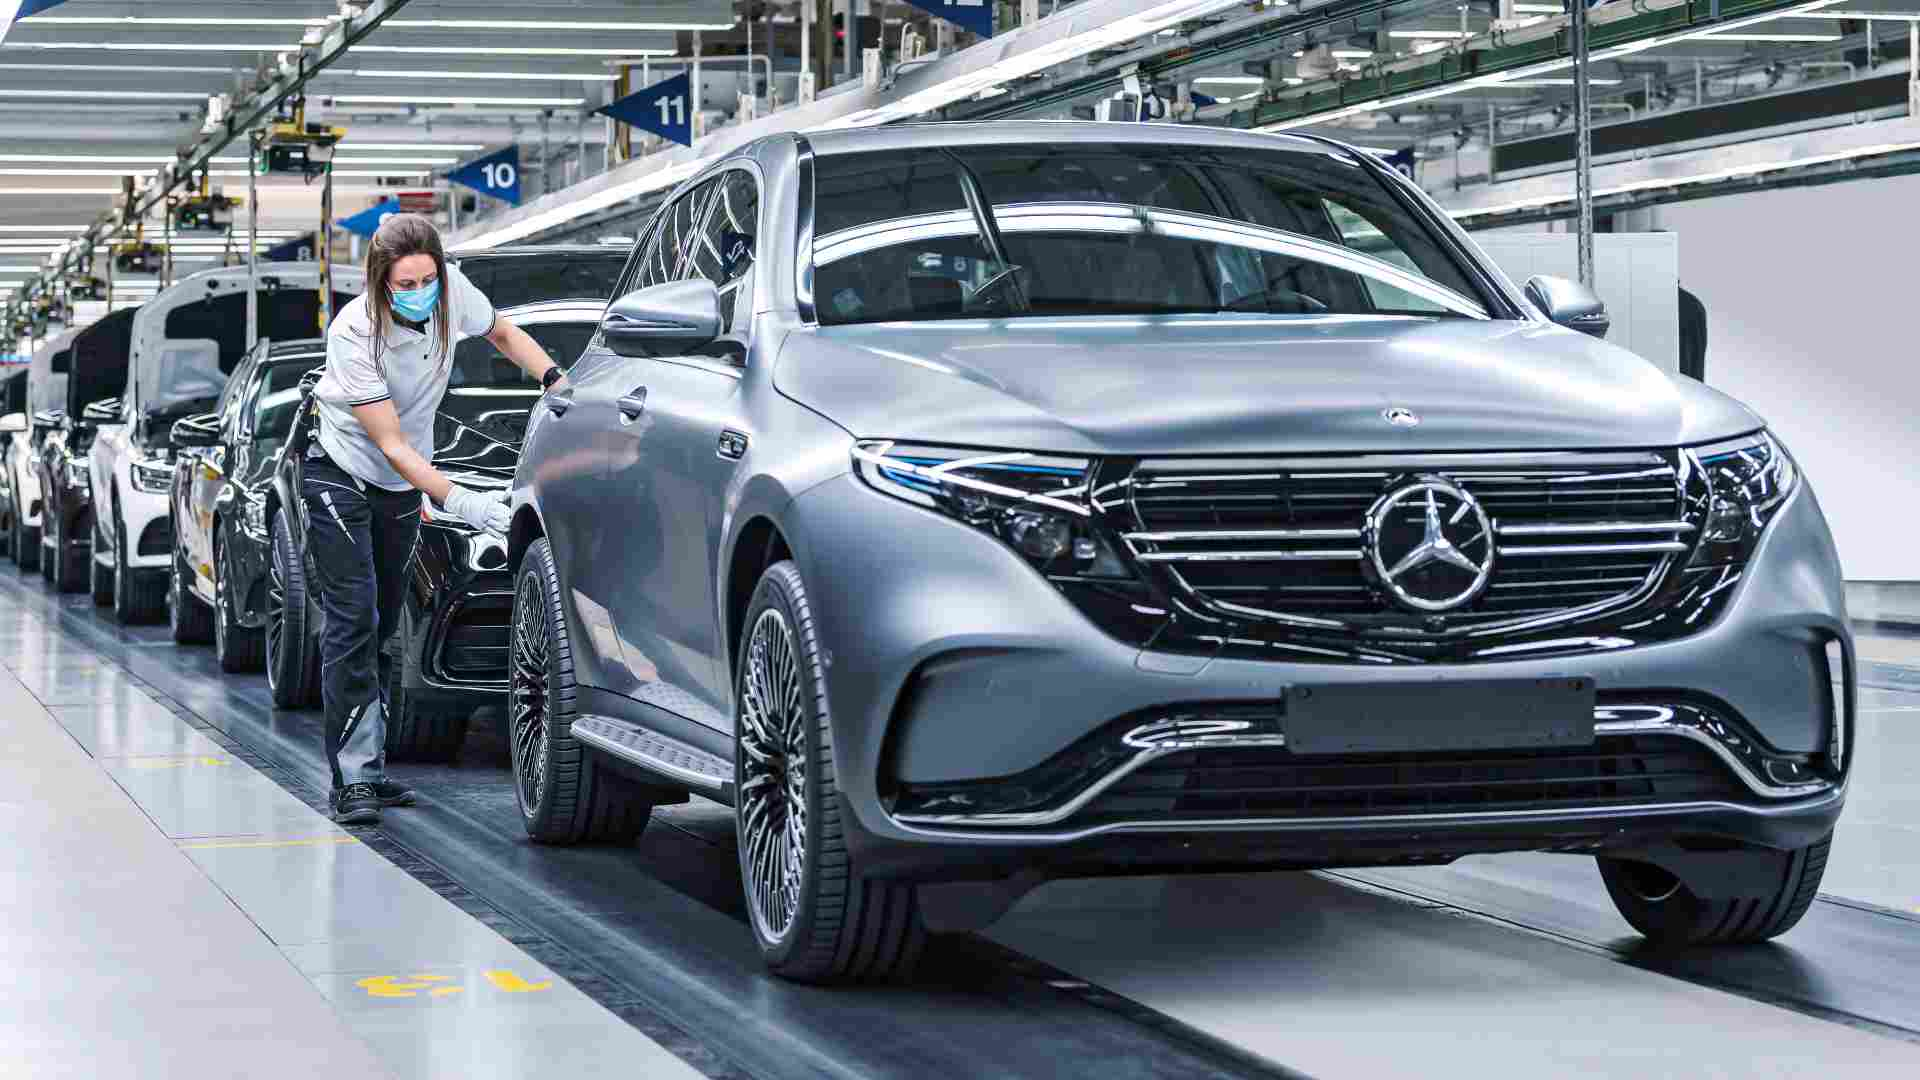 Mercedes-Benz aims to switch to electric-only by 2030, launches G-Class EV by 2024 - Technology News, Firstpost